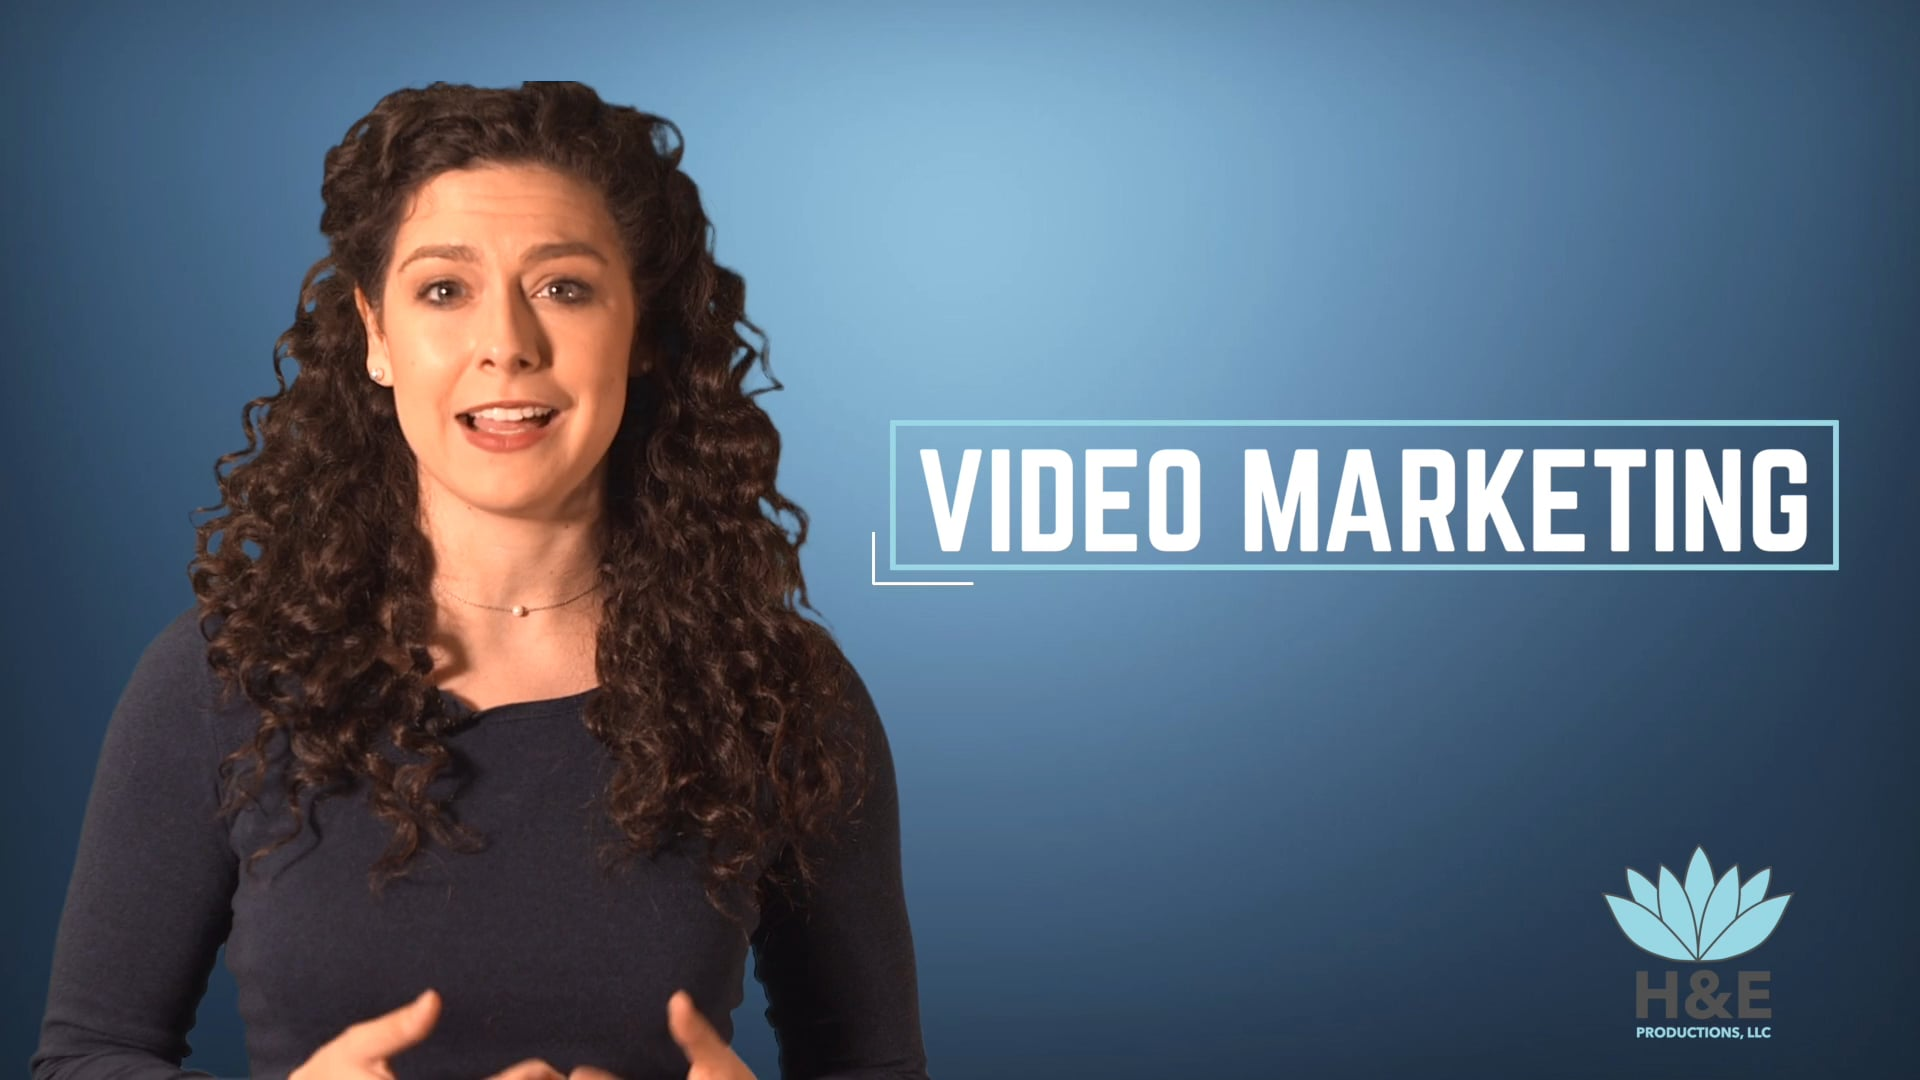 VIDEO MARKETING FACTS - H&E PRODUCTIONS